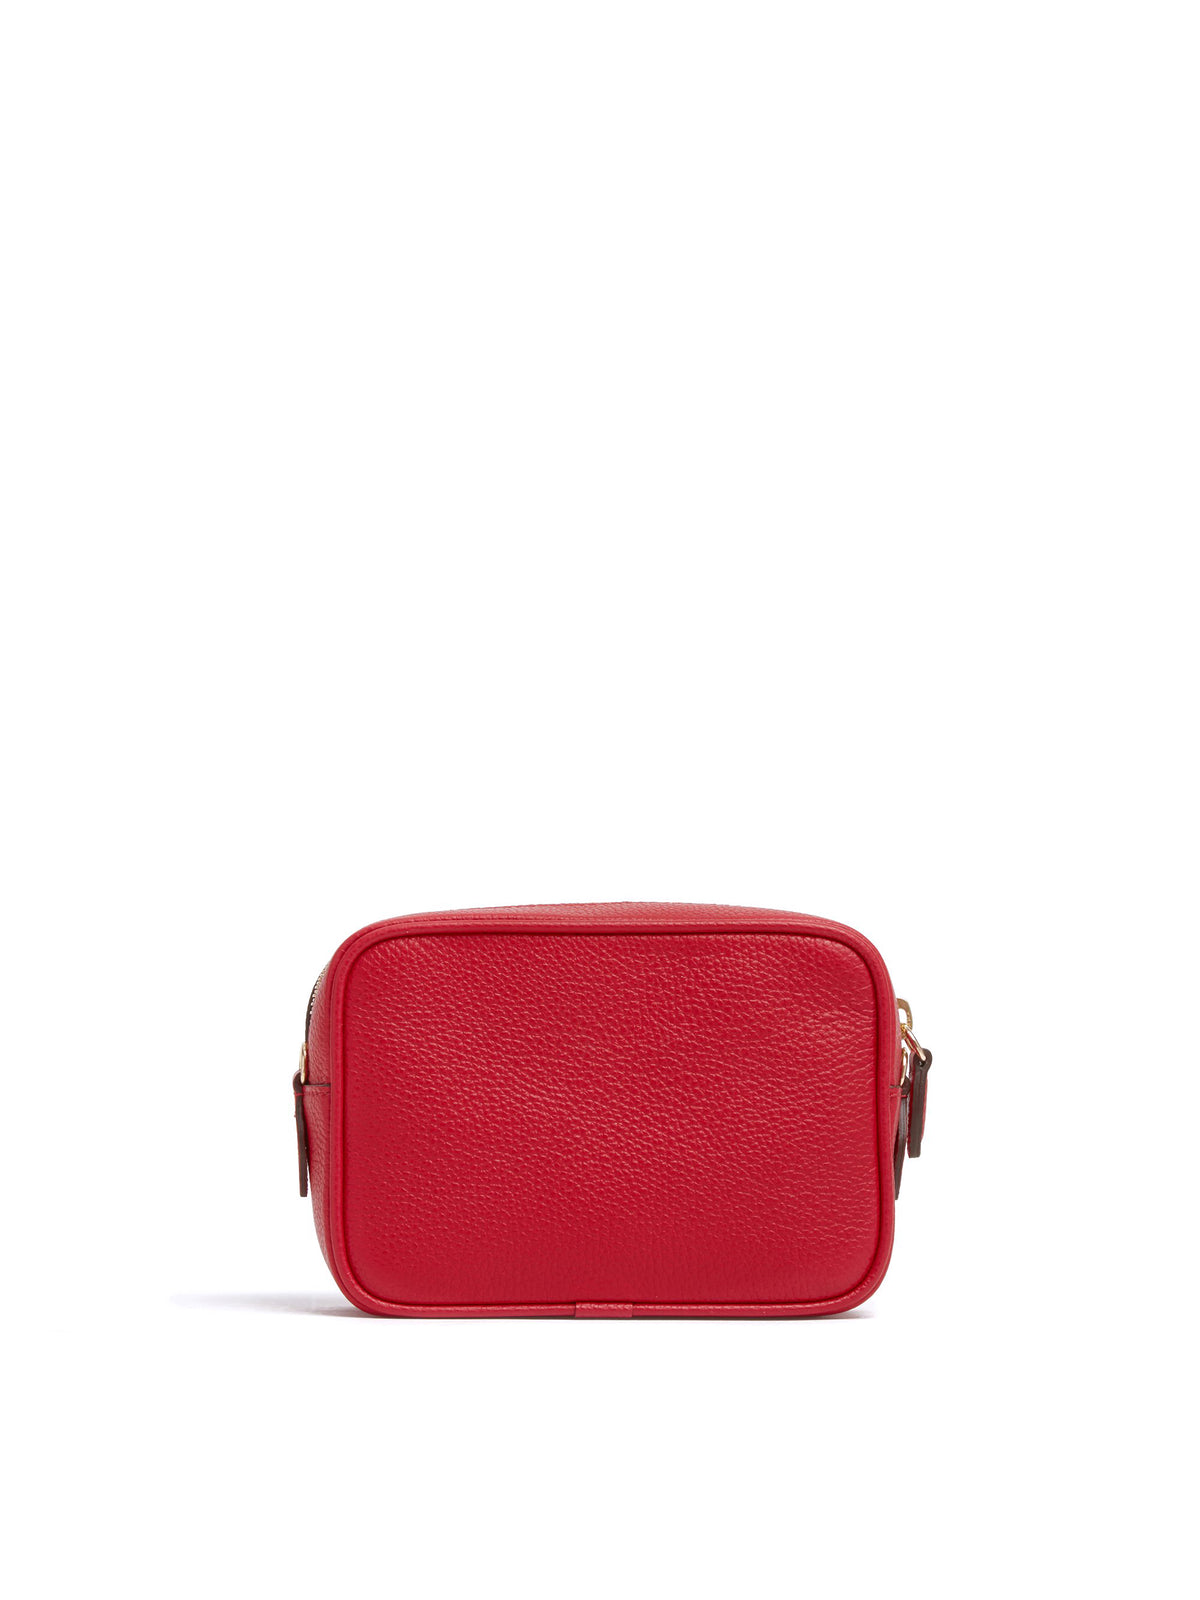 Mark Cross Leather Zip Pouch Soft Calf Mc Red Back